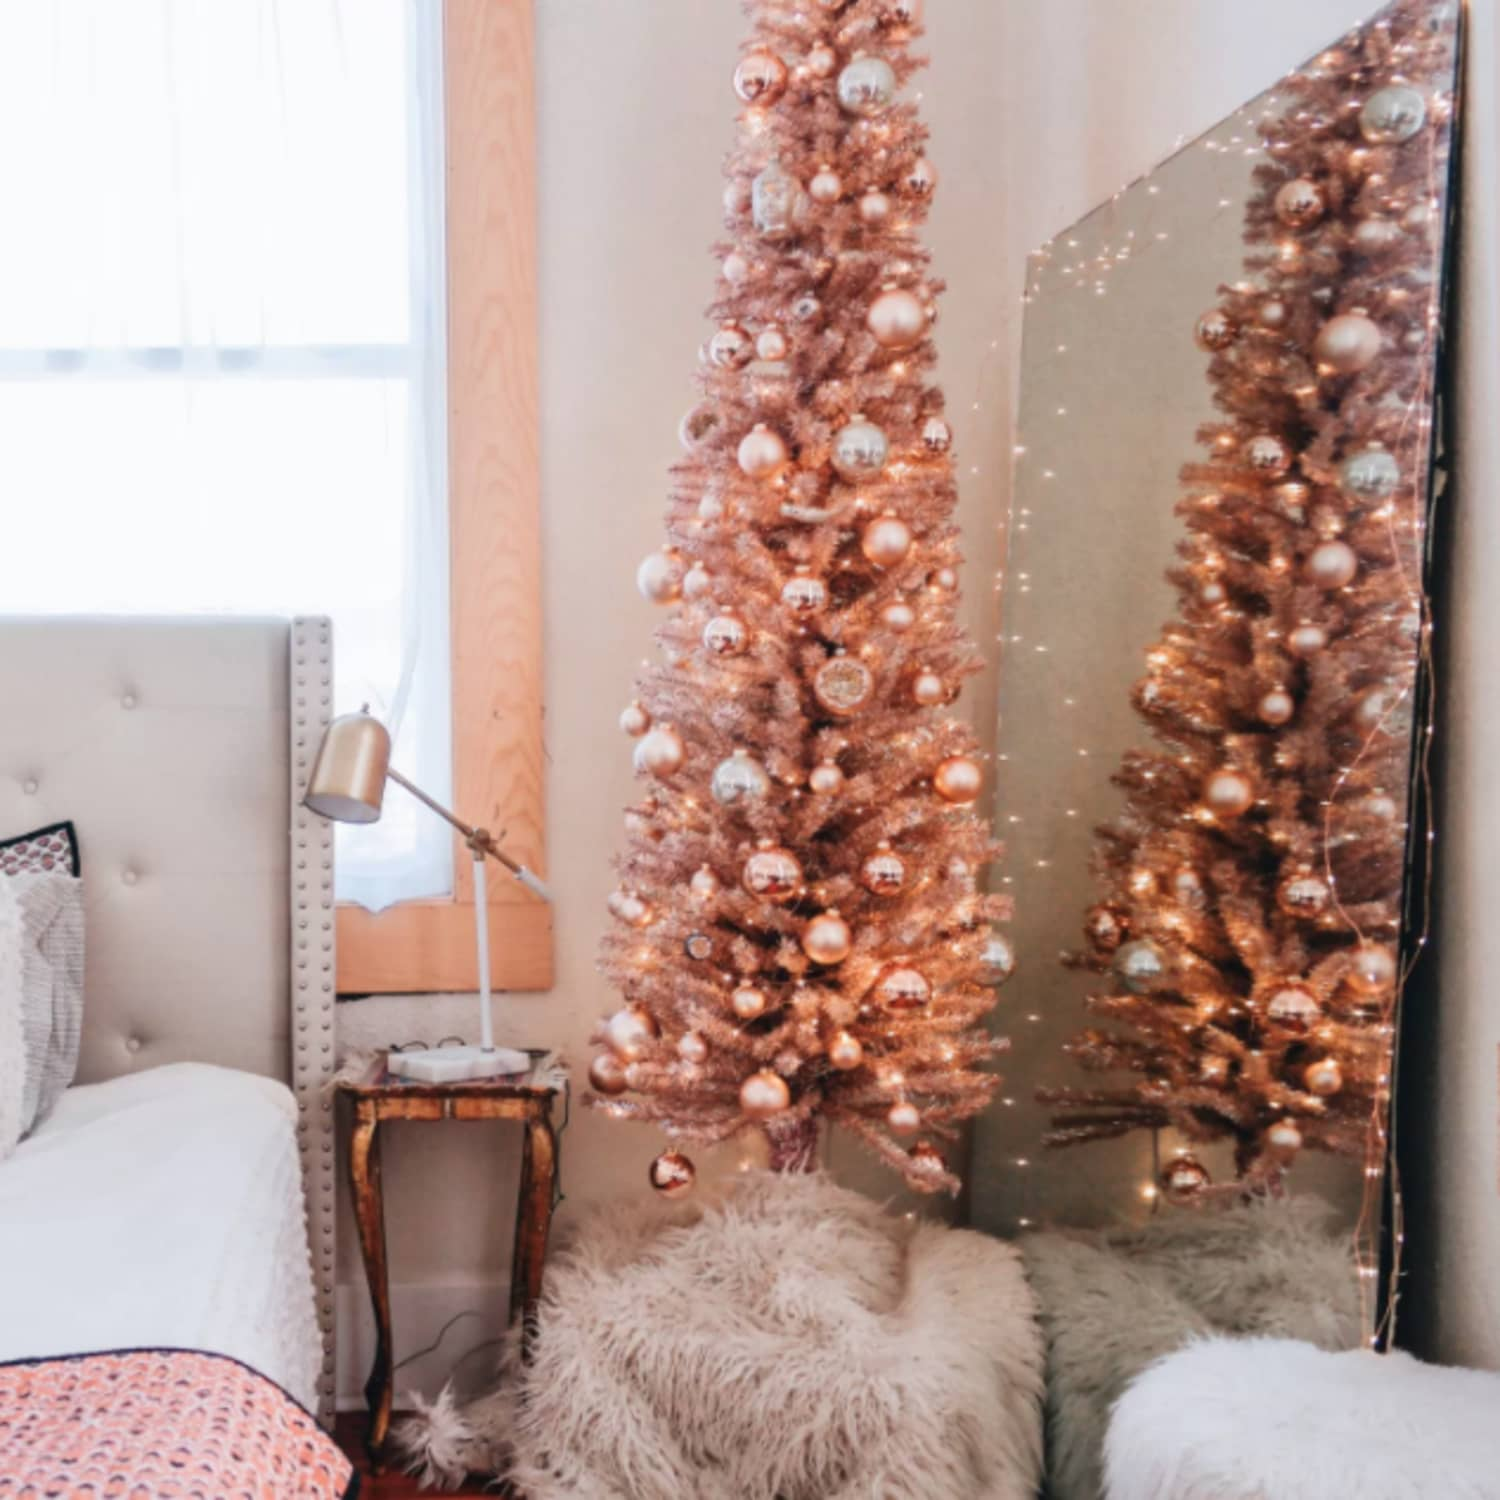 Rose Gold Christmas Tree Trend Where to Buy